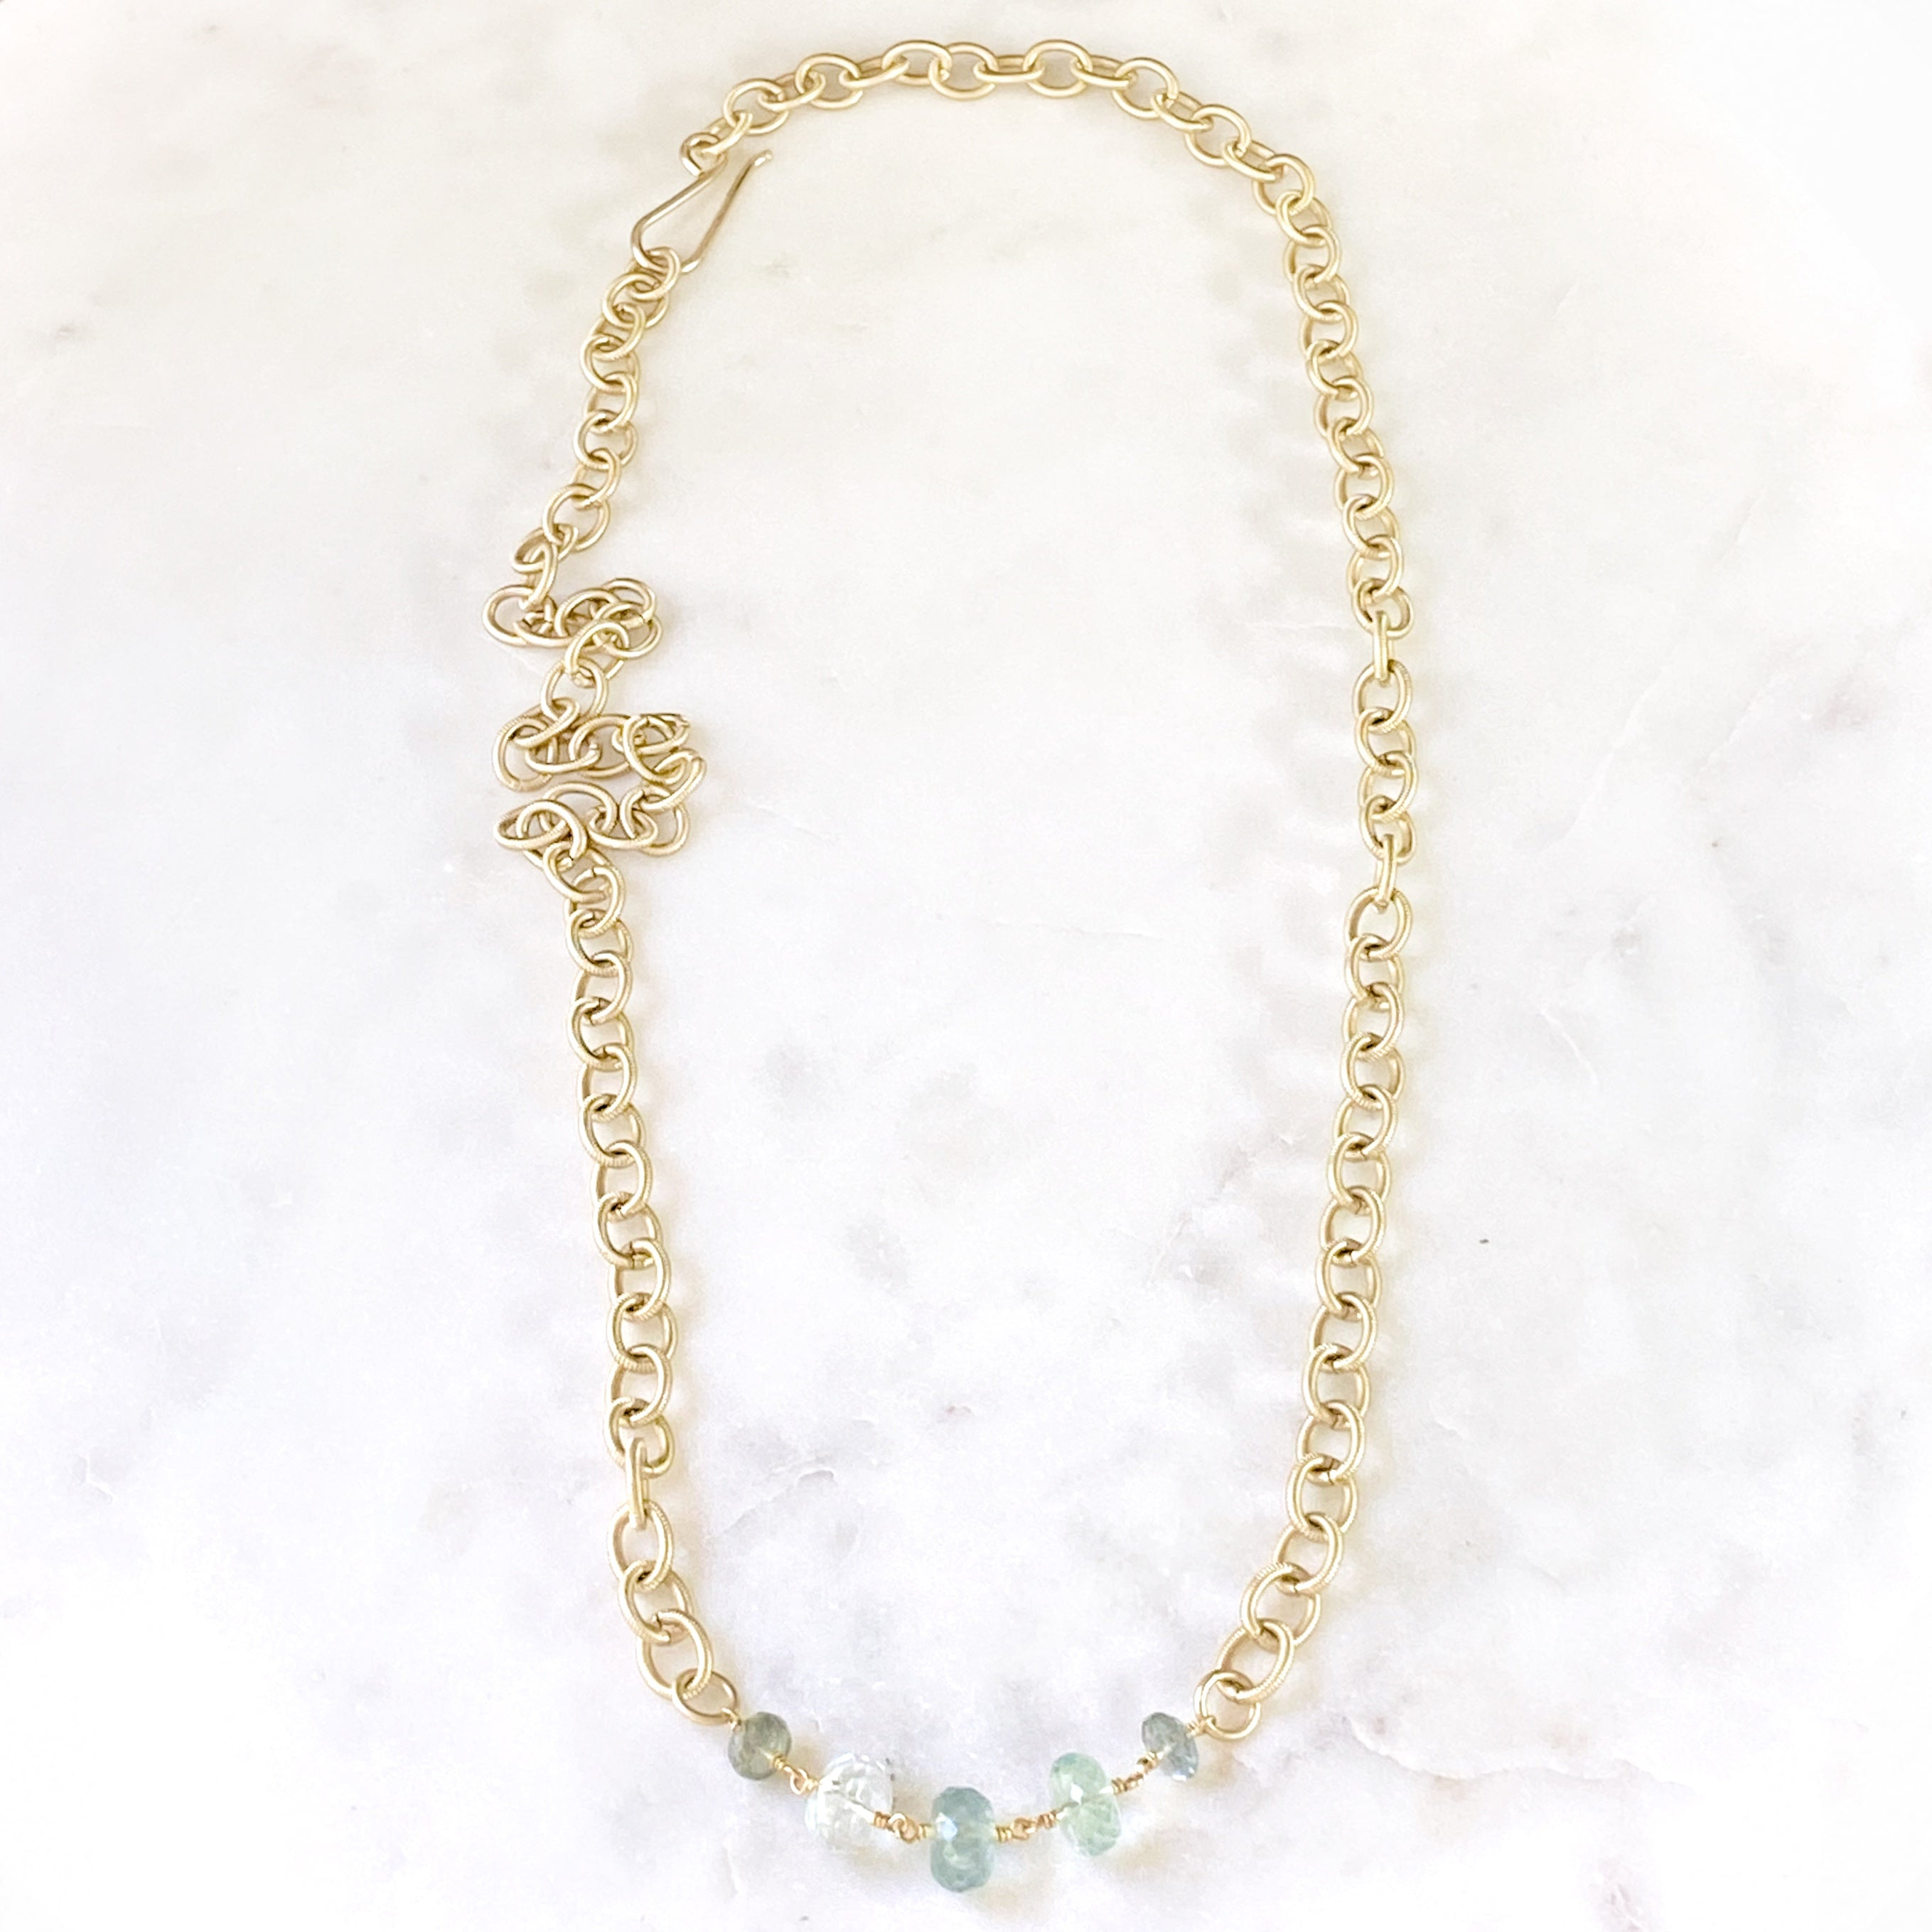 Hydra Necklace, Aquamarine